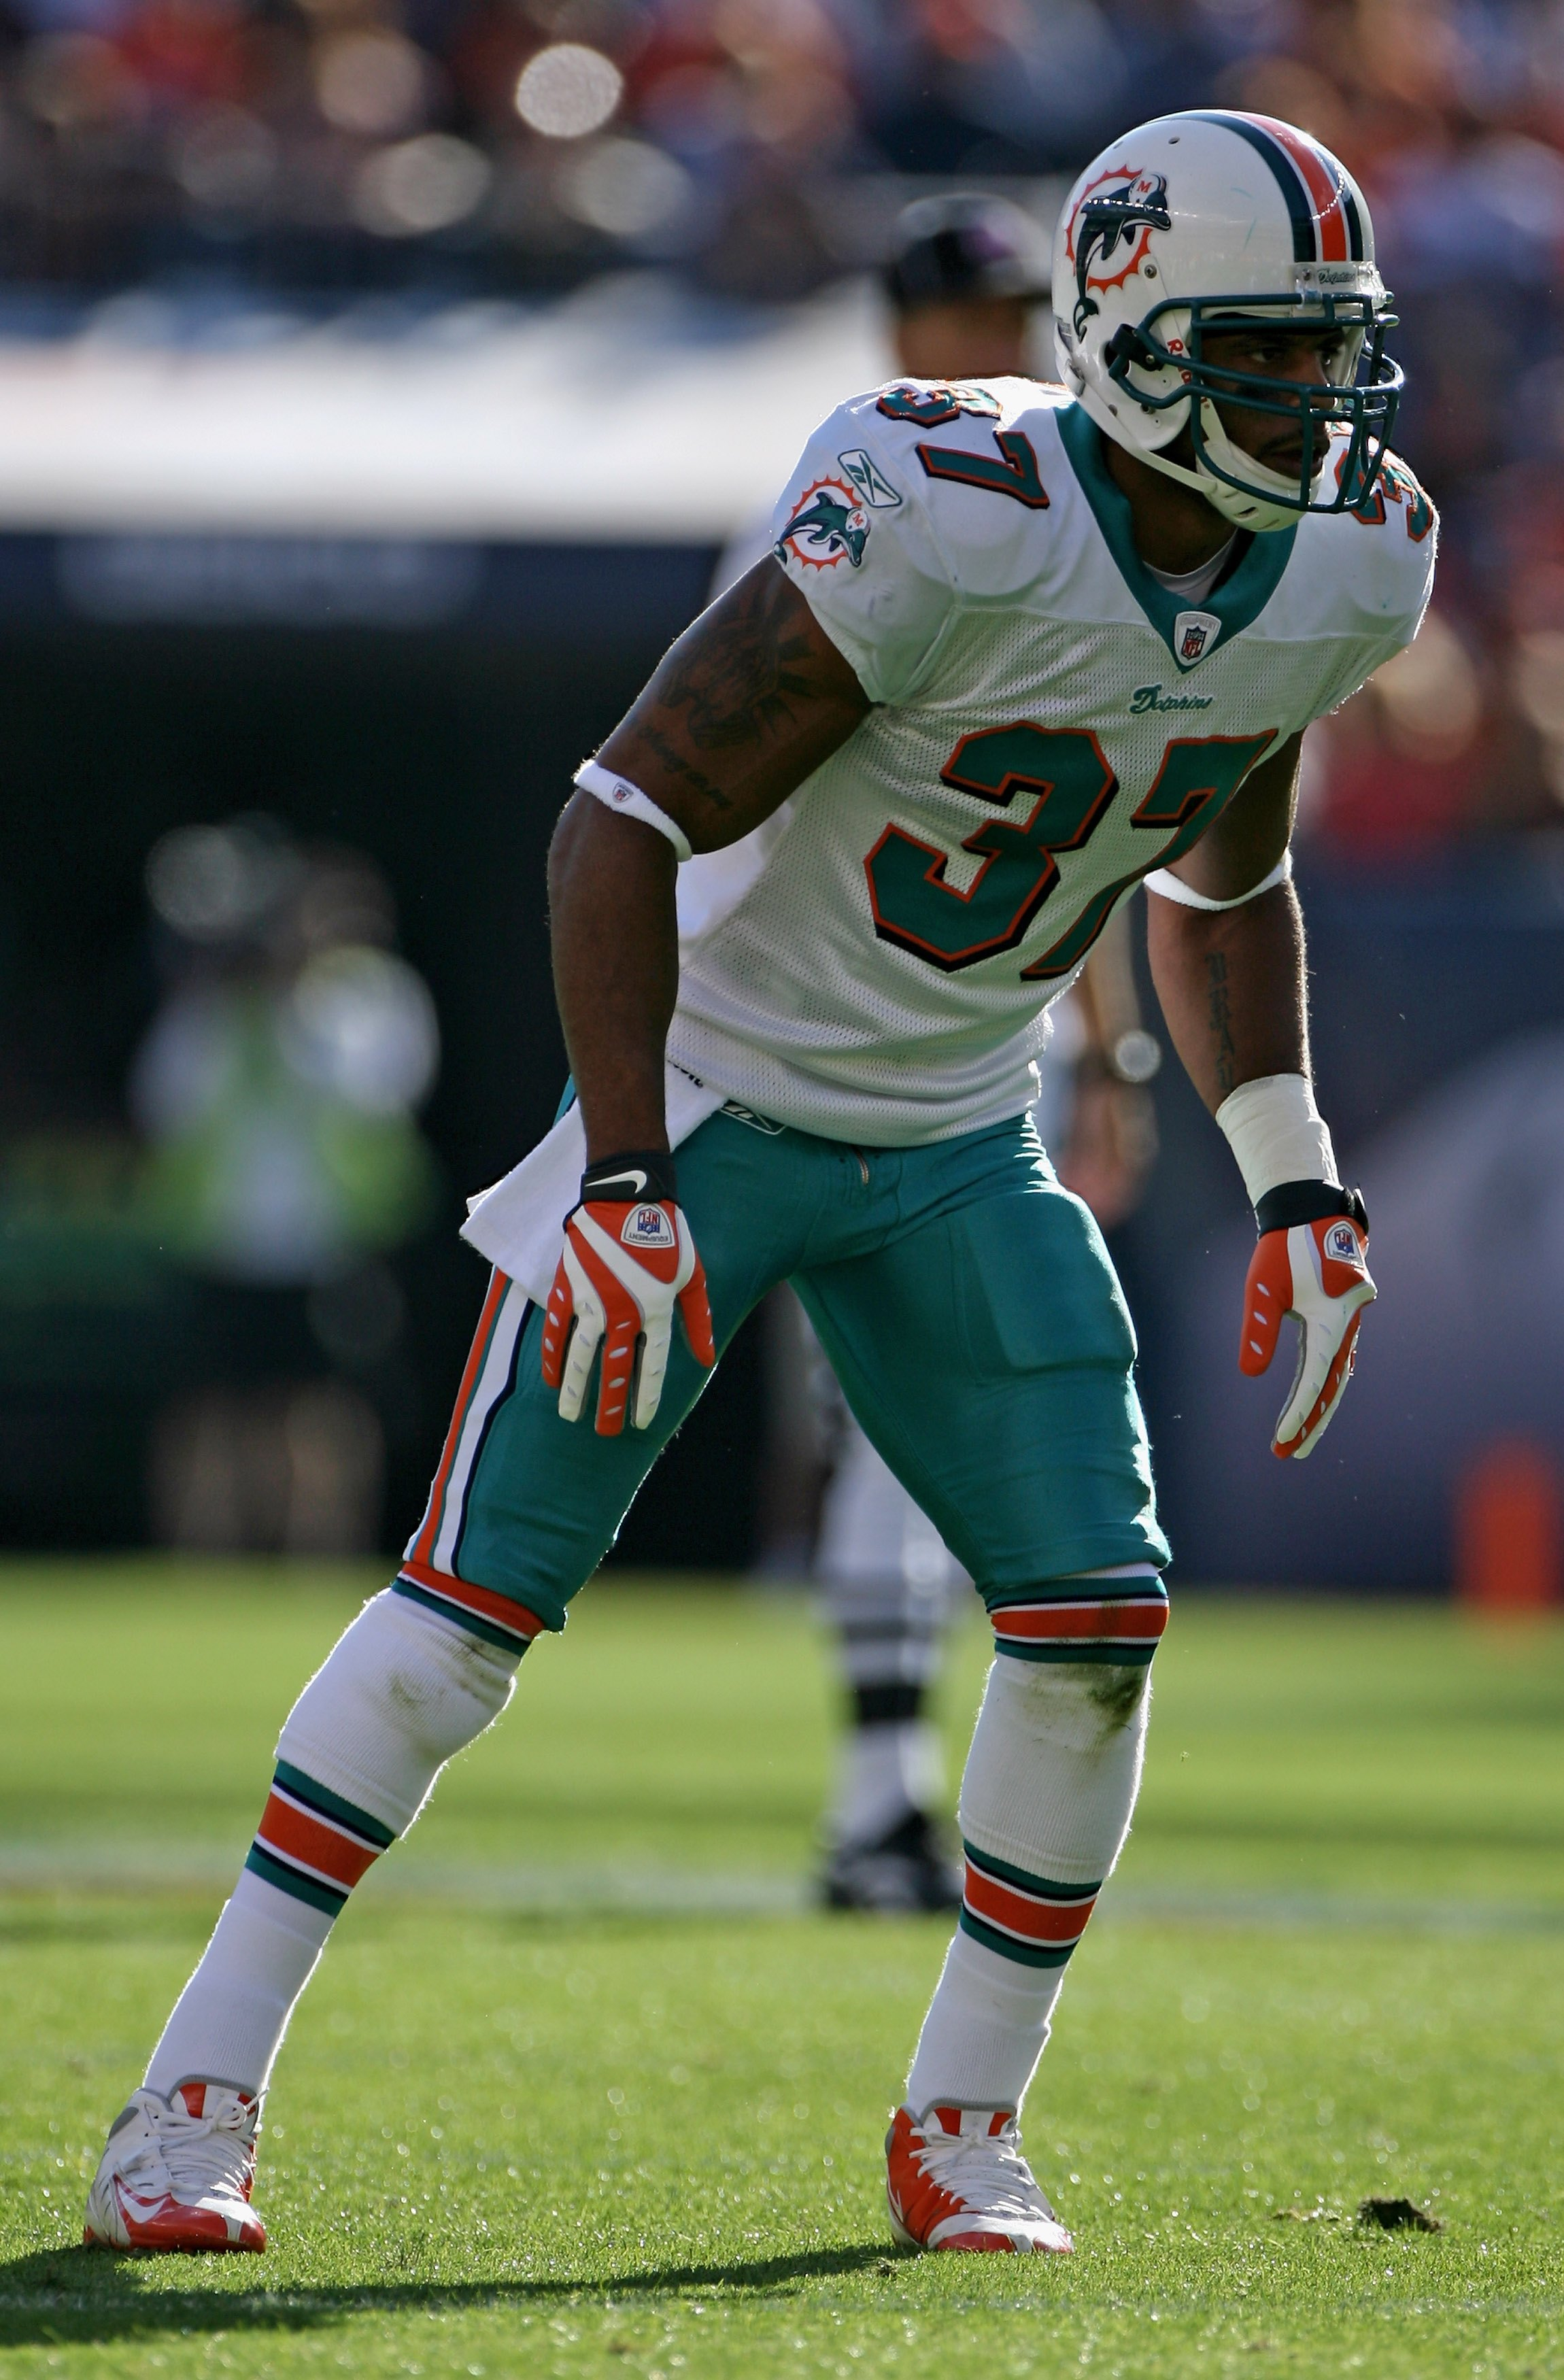 Yeremiah Bell led the Dolphins in tackles with 101 in 2010.